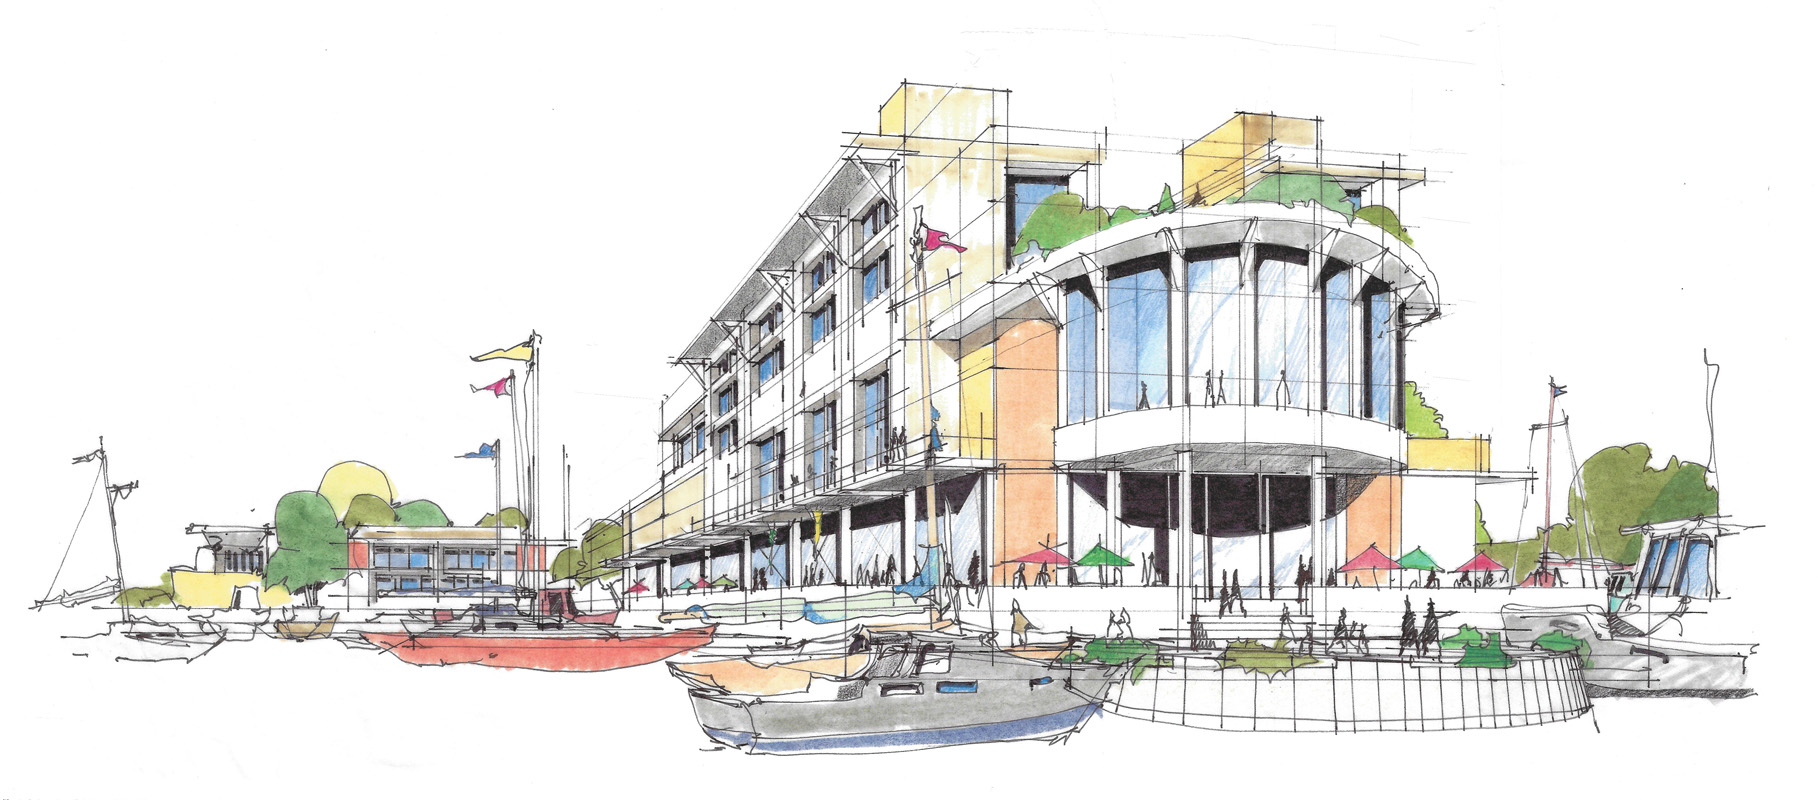 Image from Ward-Young Architecture & Planning. A centerpiece of the development would be a food and wine hall.